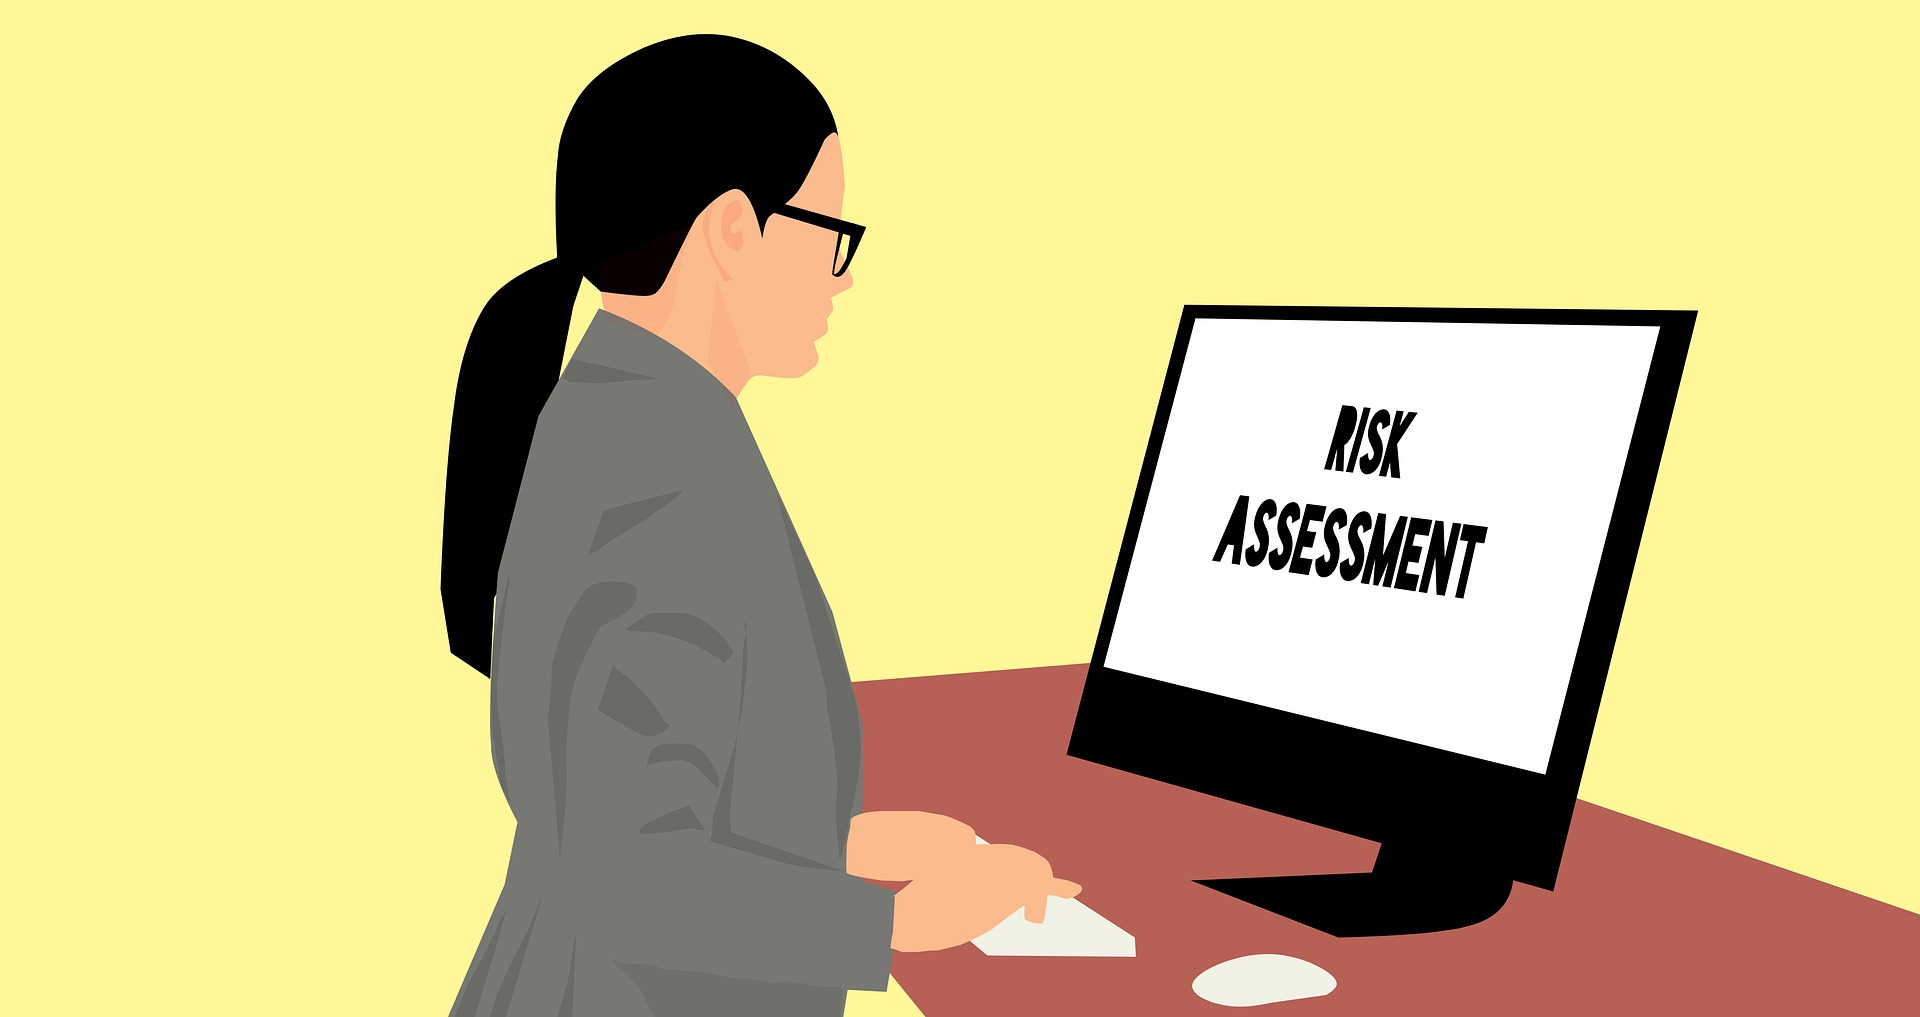 Business woman using risk assessment